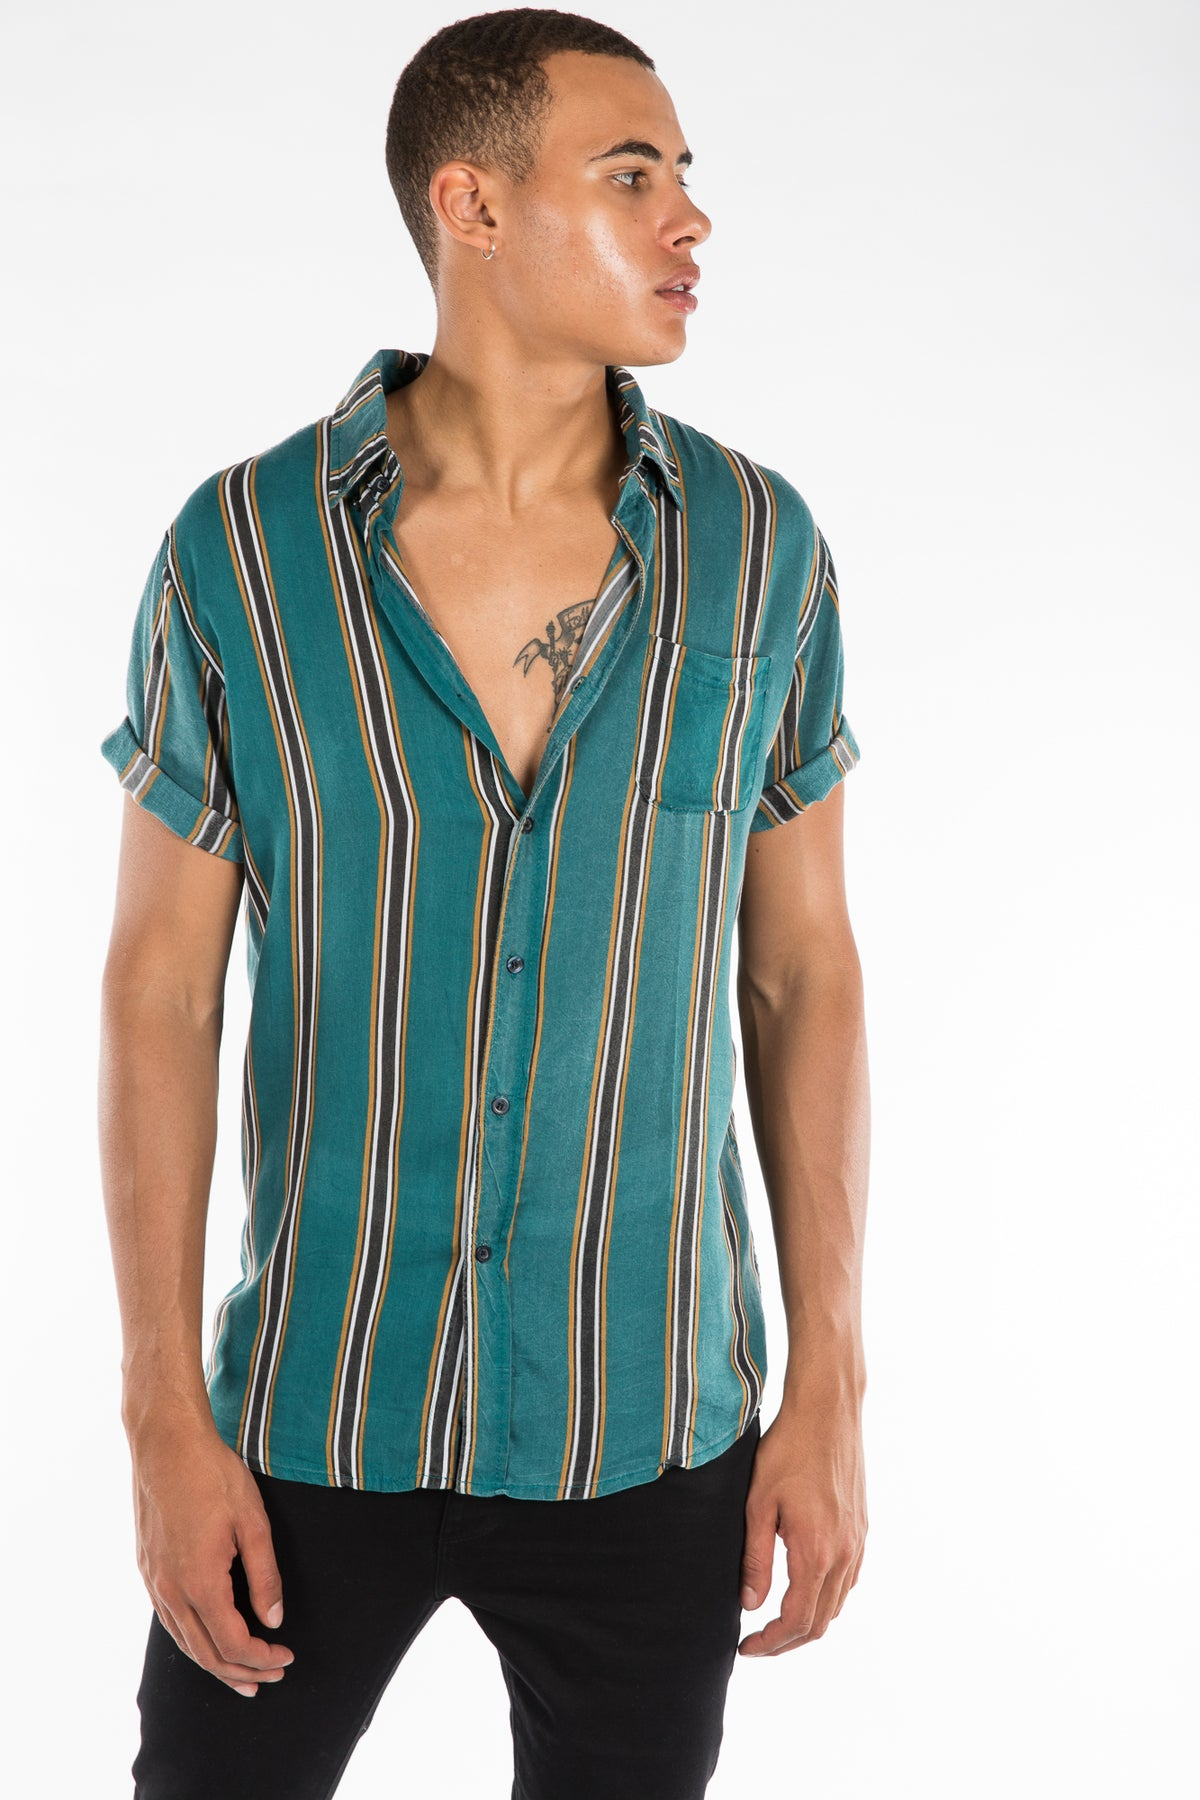 Jack Boating Shirt Green Stripe